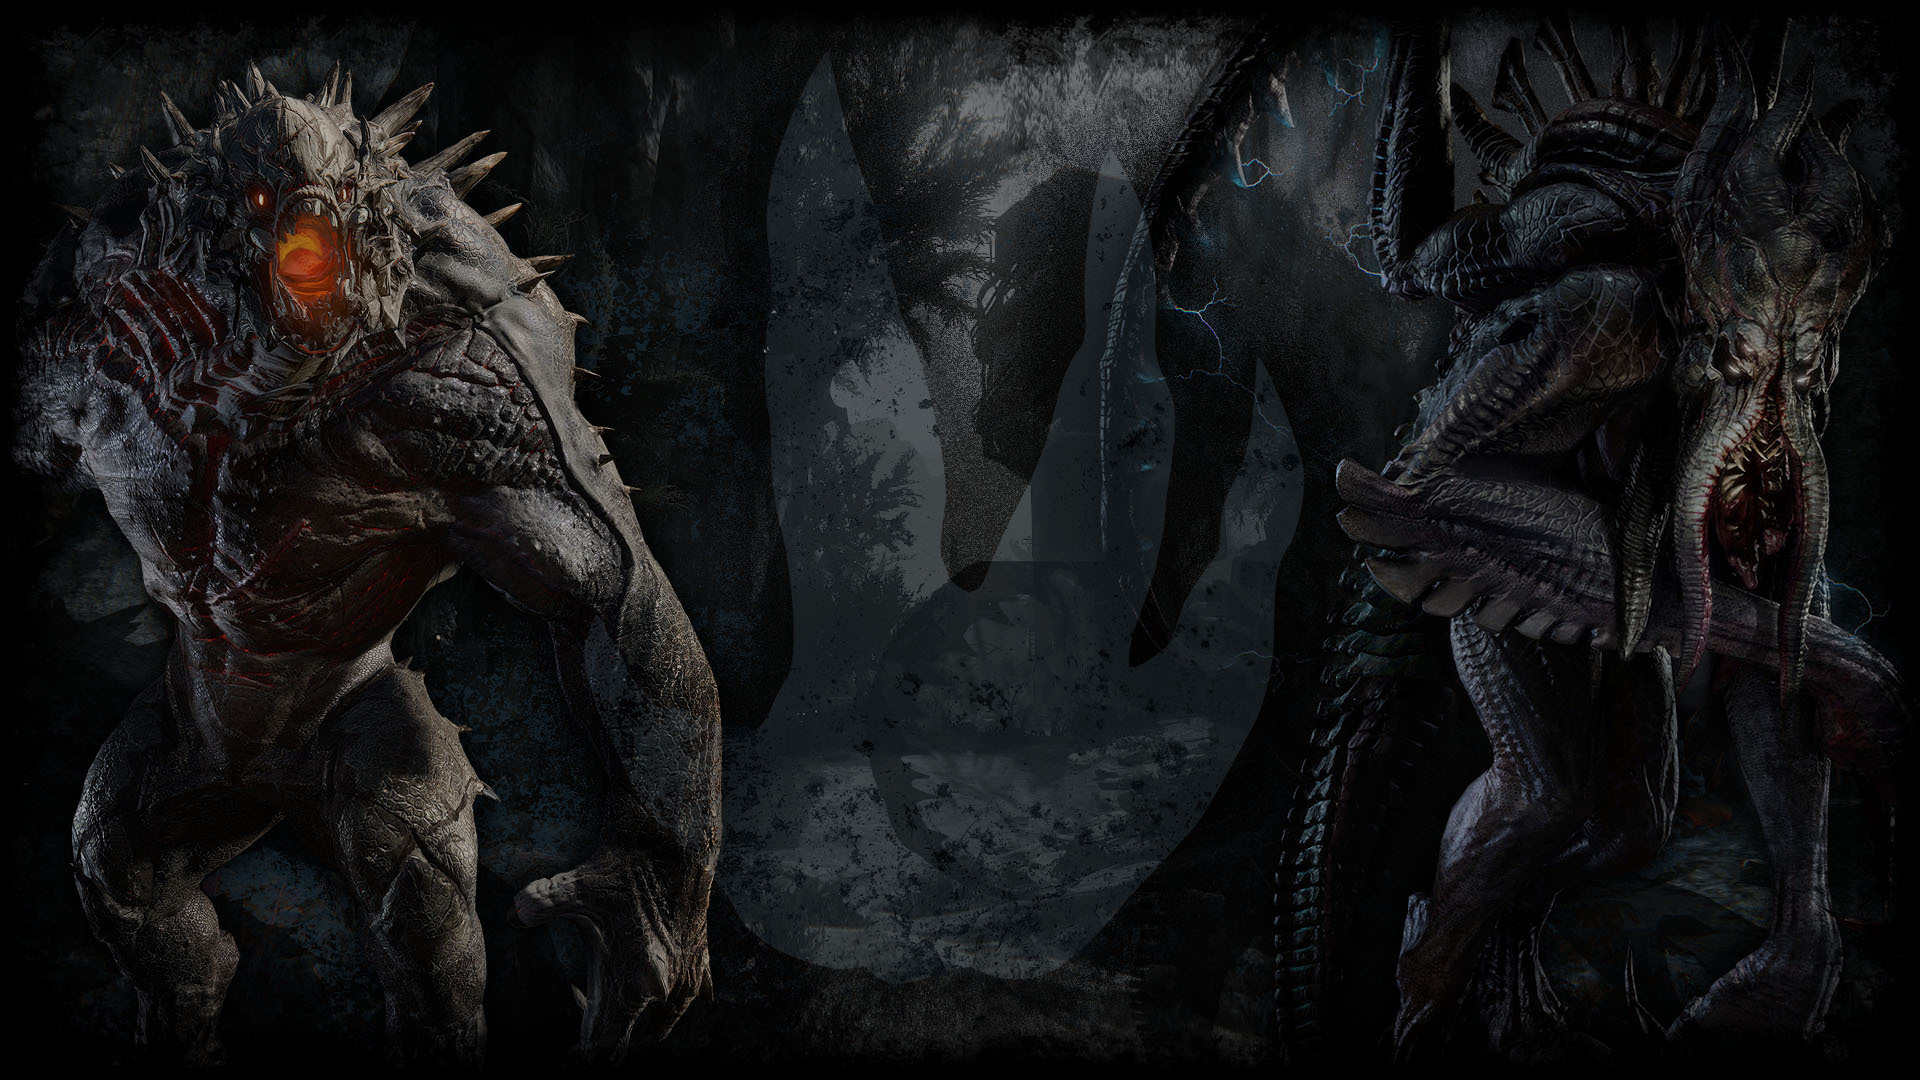 Evolve Full Hd Wallpaper And Background Image 1920x1080 HD Wallpapers Download Free Images Wallpaper [1000image.com]